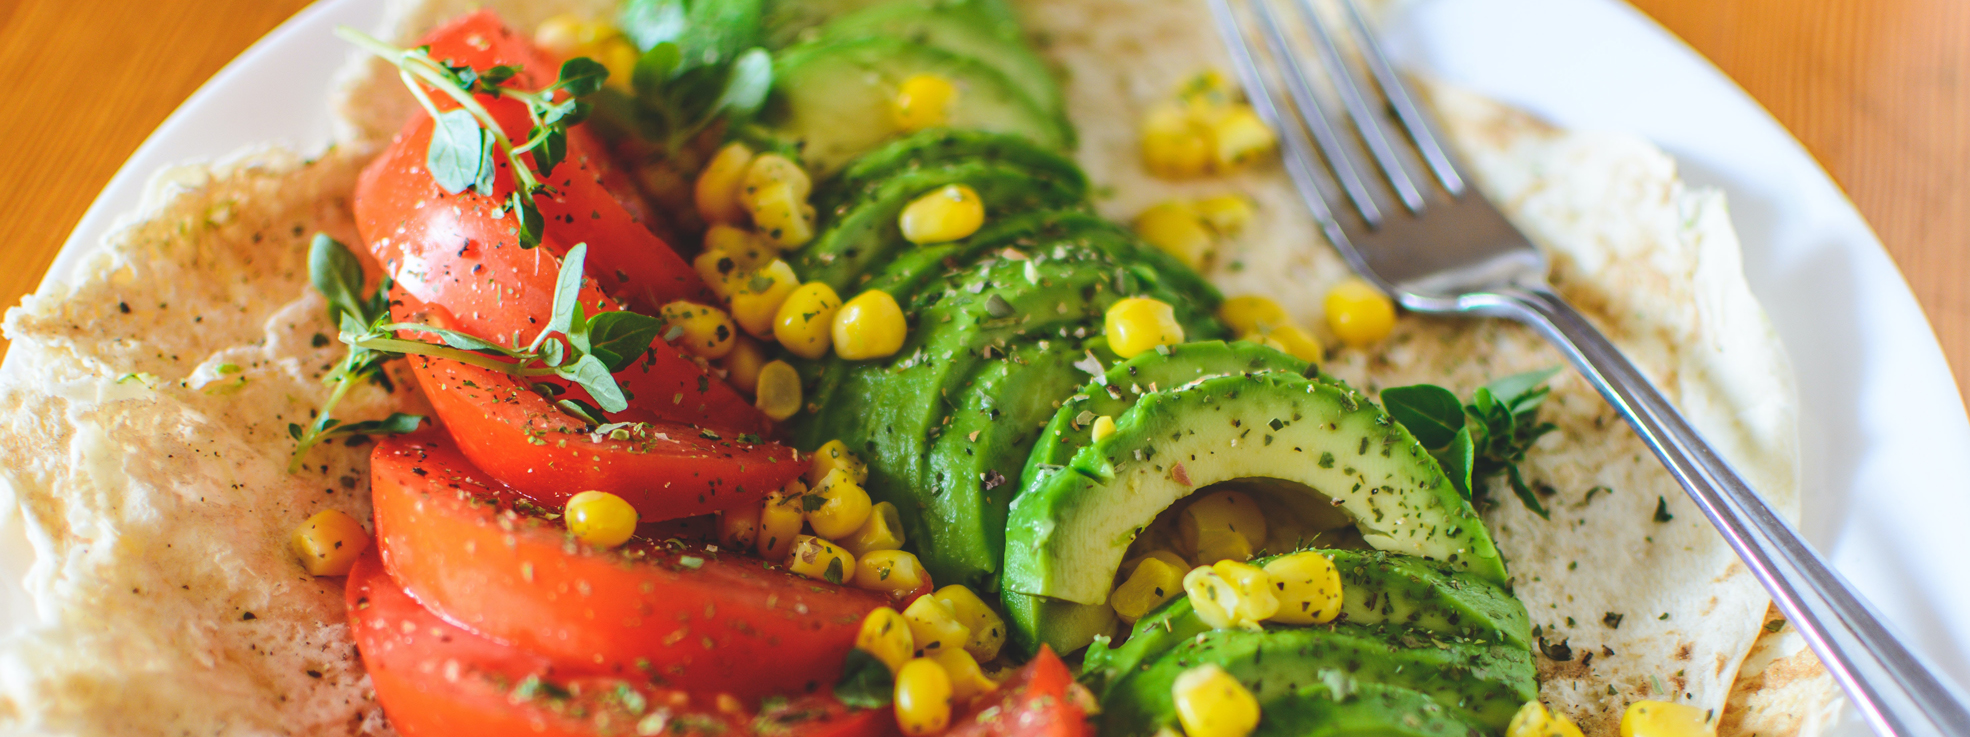 Vegan Diet - A Complete Guide